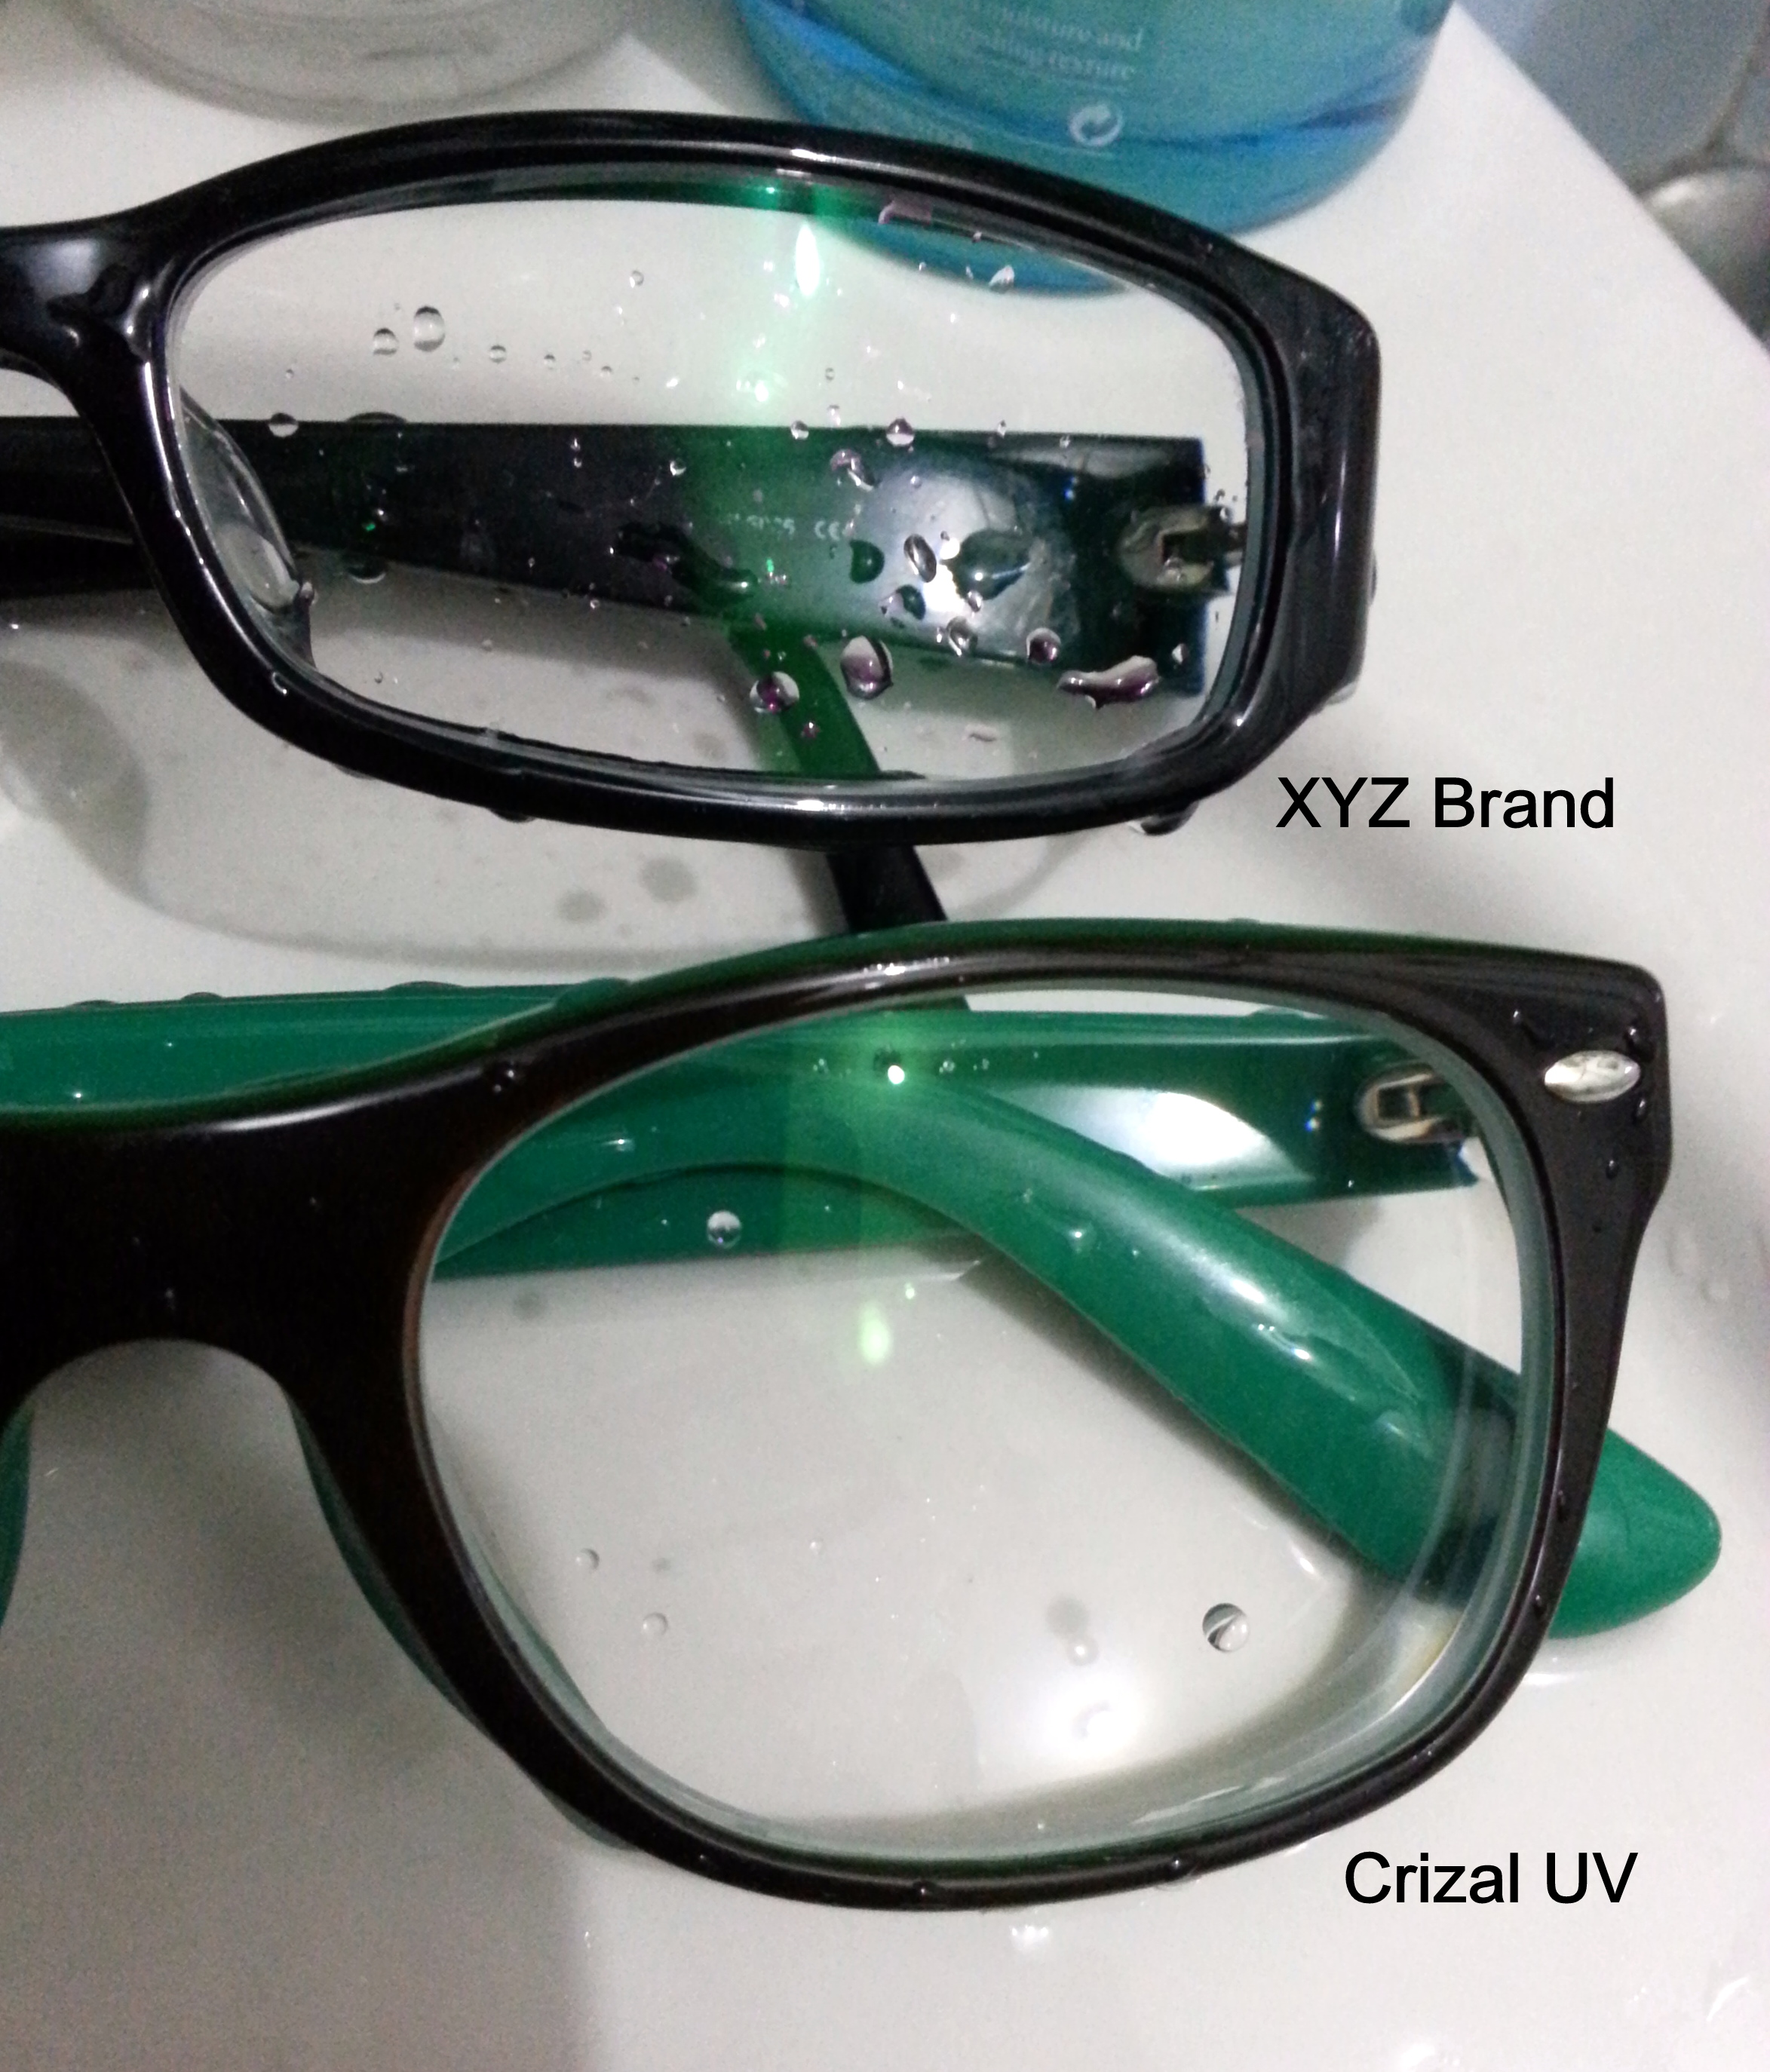 greater eye protection against uv rays with crizal uv